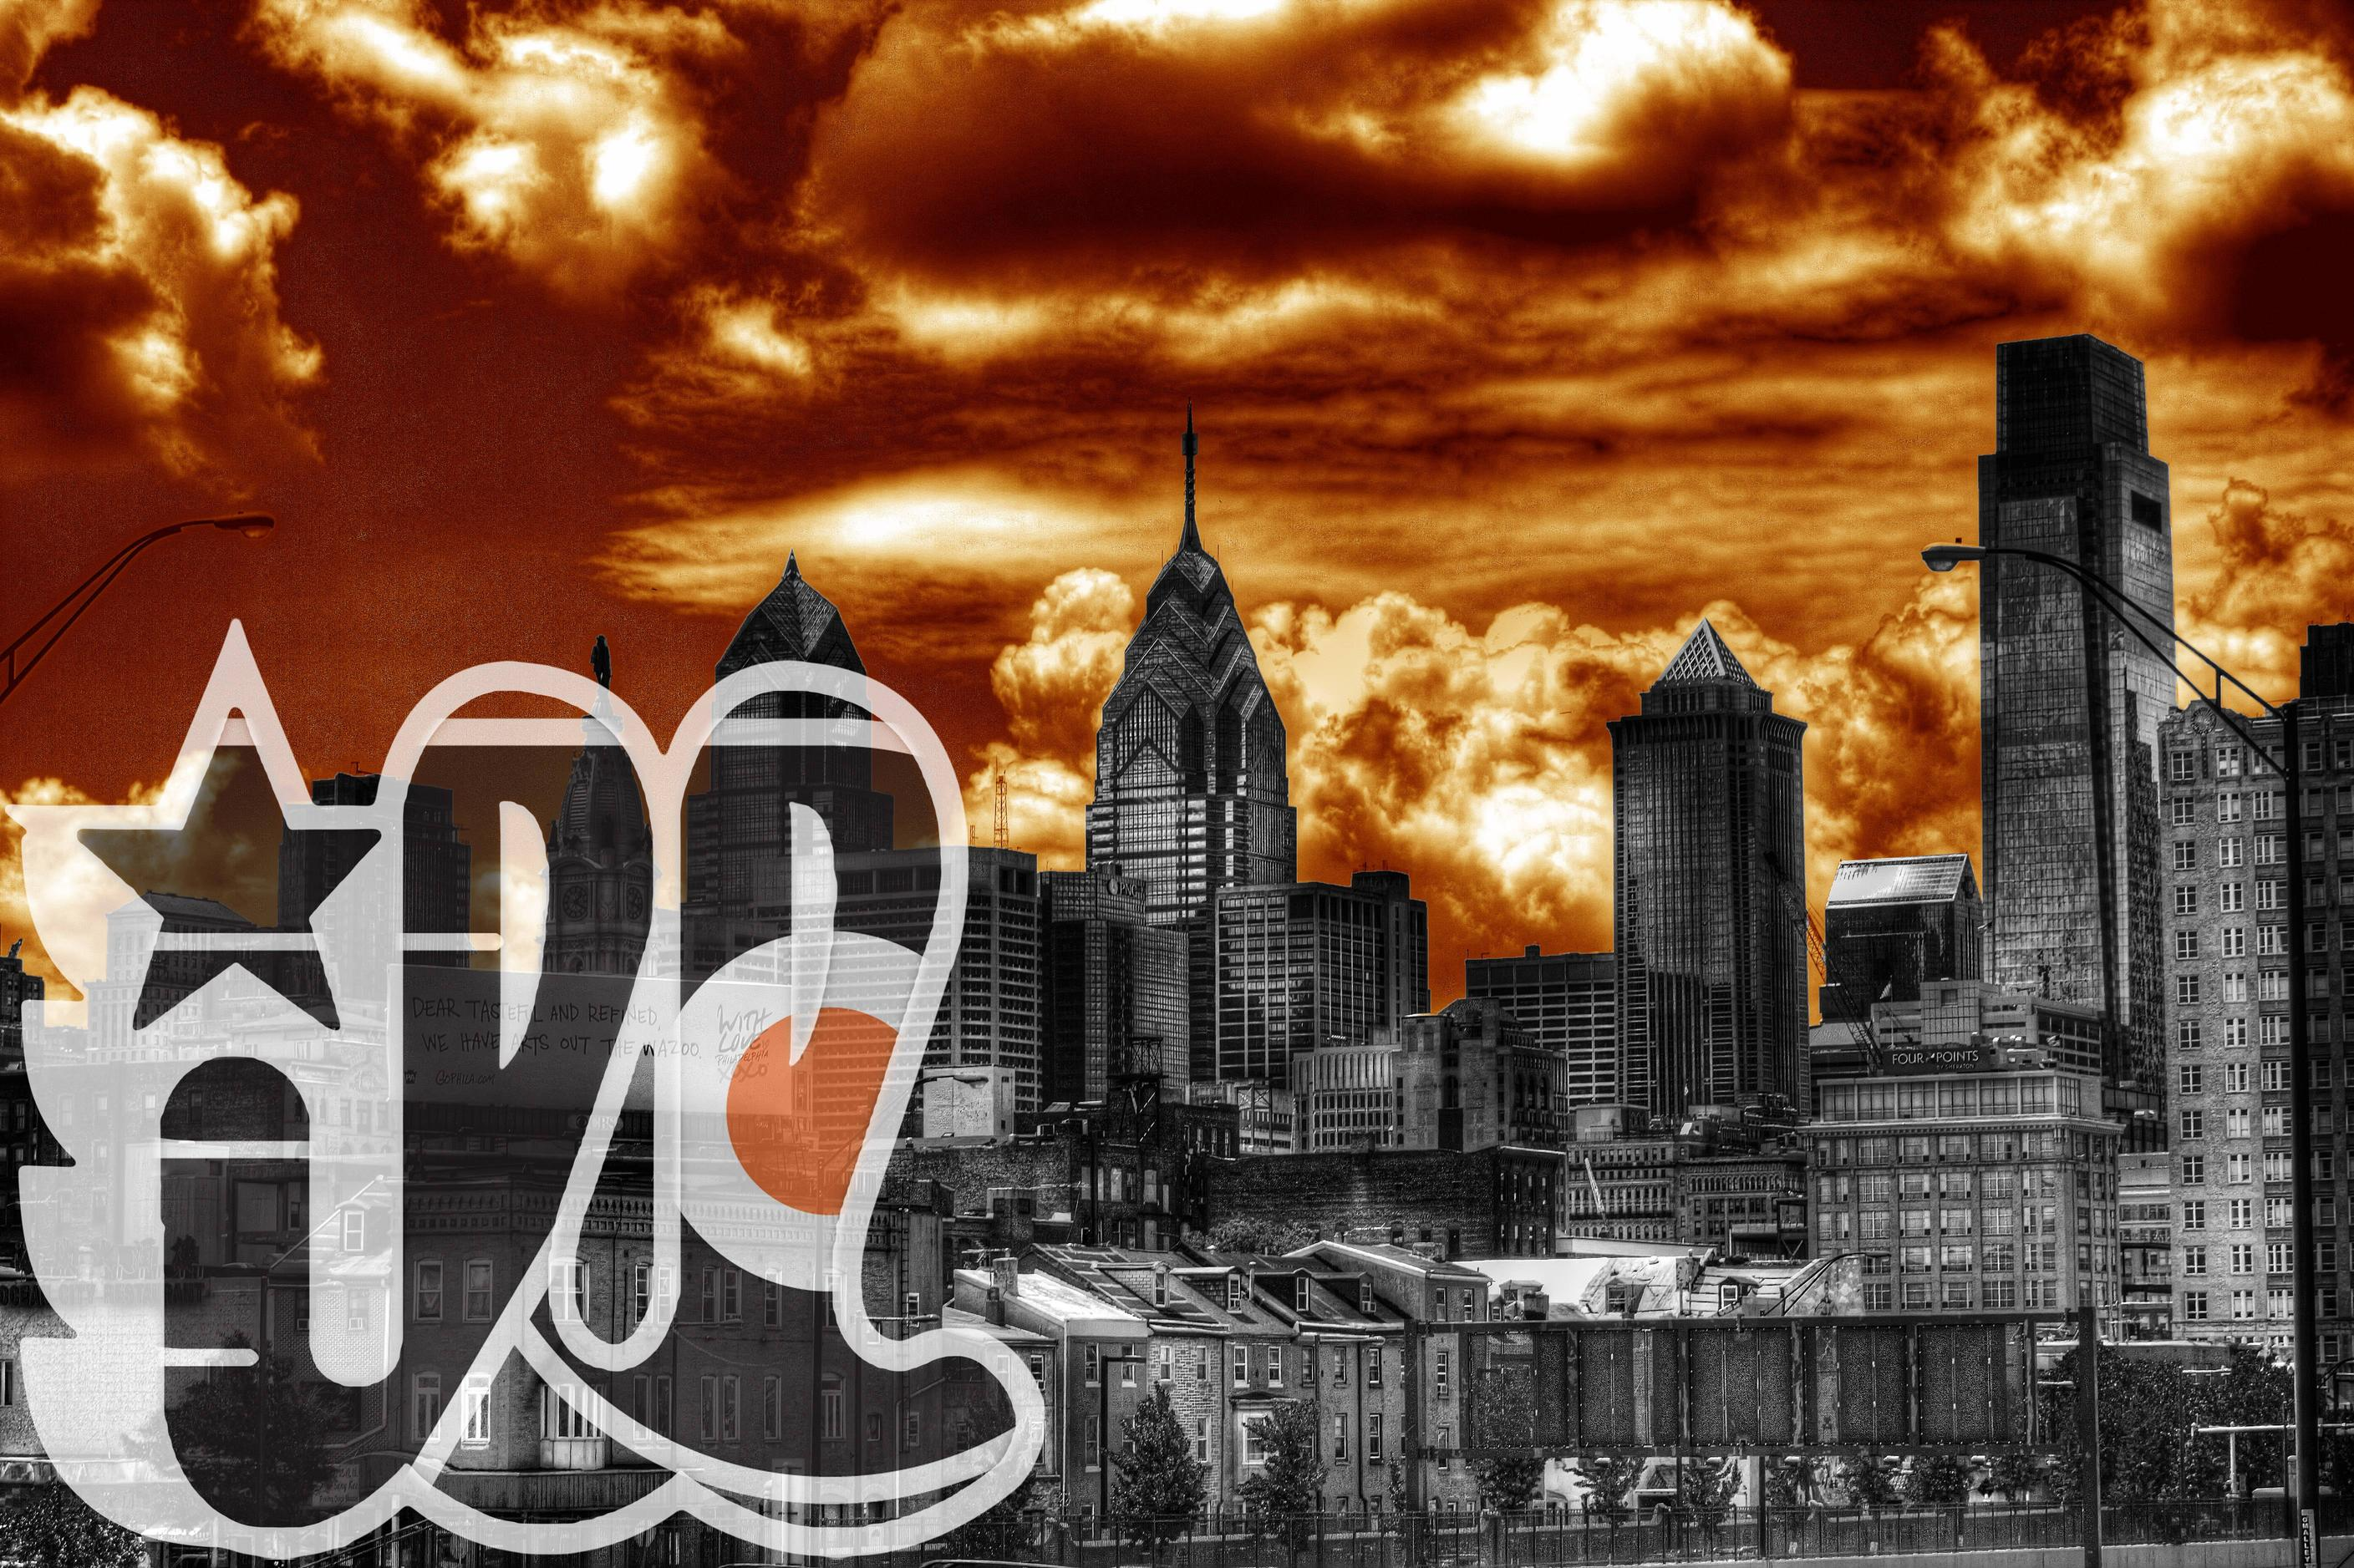 Philadelphia Flyers Desktop Wallpapers 2817x1877